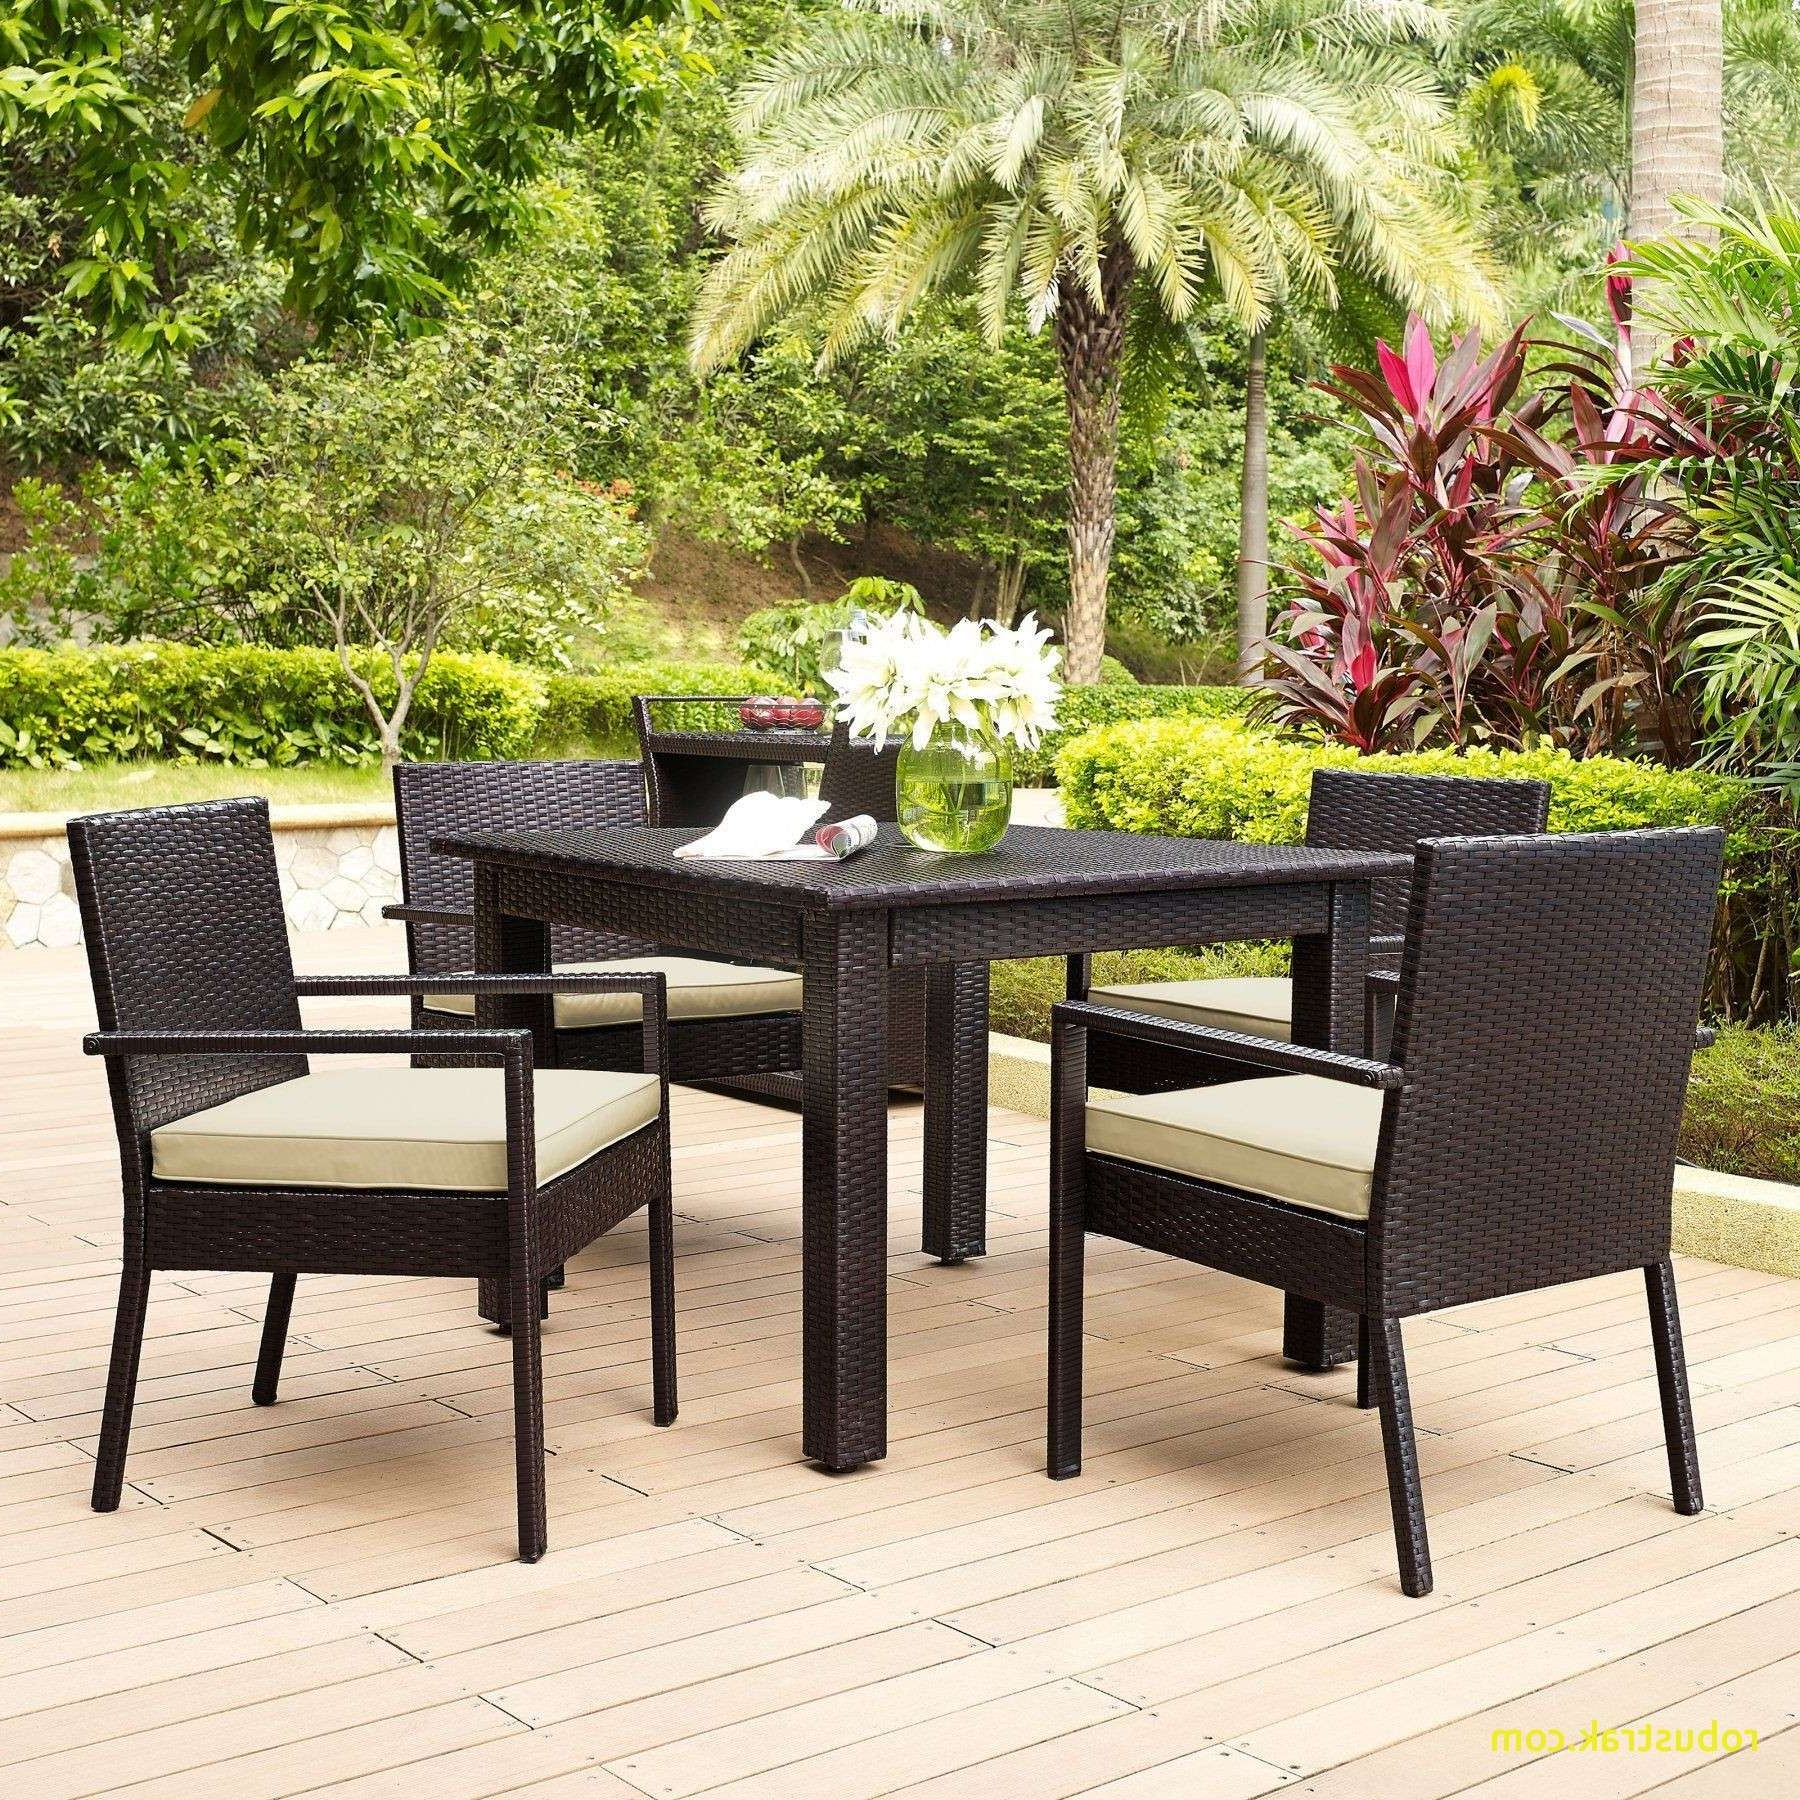 Chair : Used Patio Furniture Plastic Dining Sets Wicker Rocking In Trendy Used Patio Rocking Chairs (View 2 of 20)